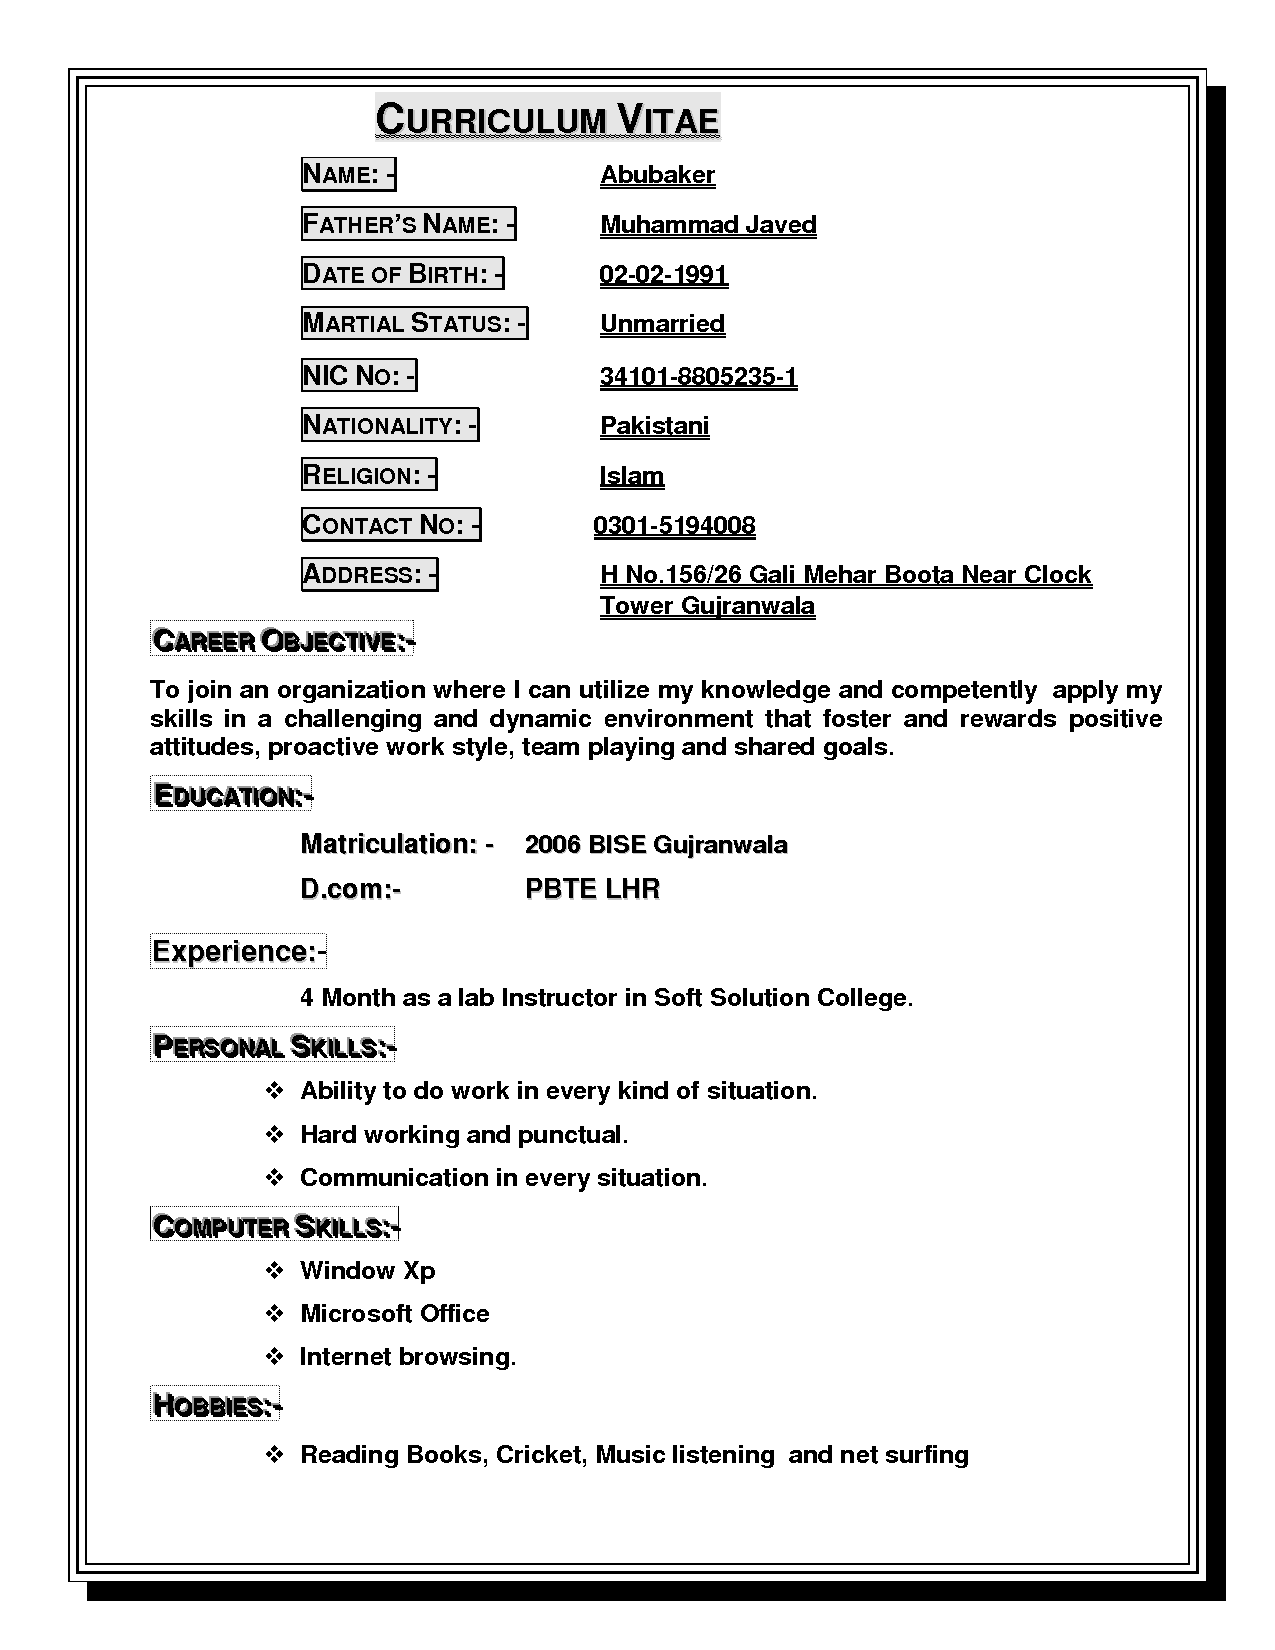 Example of cv for job